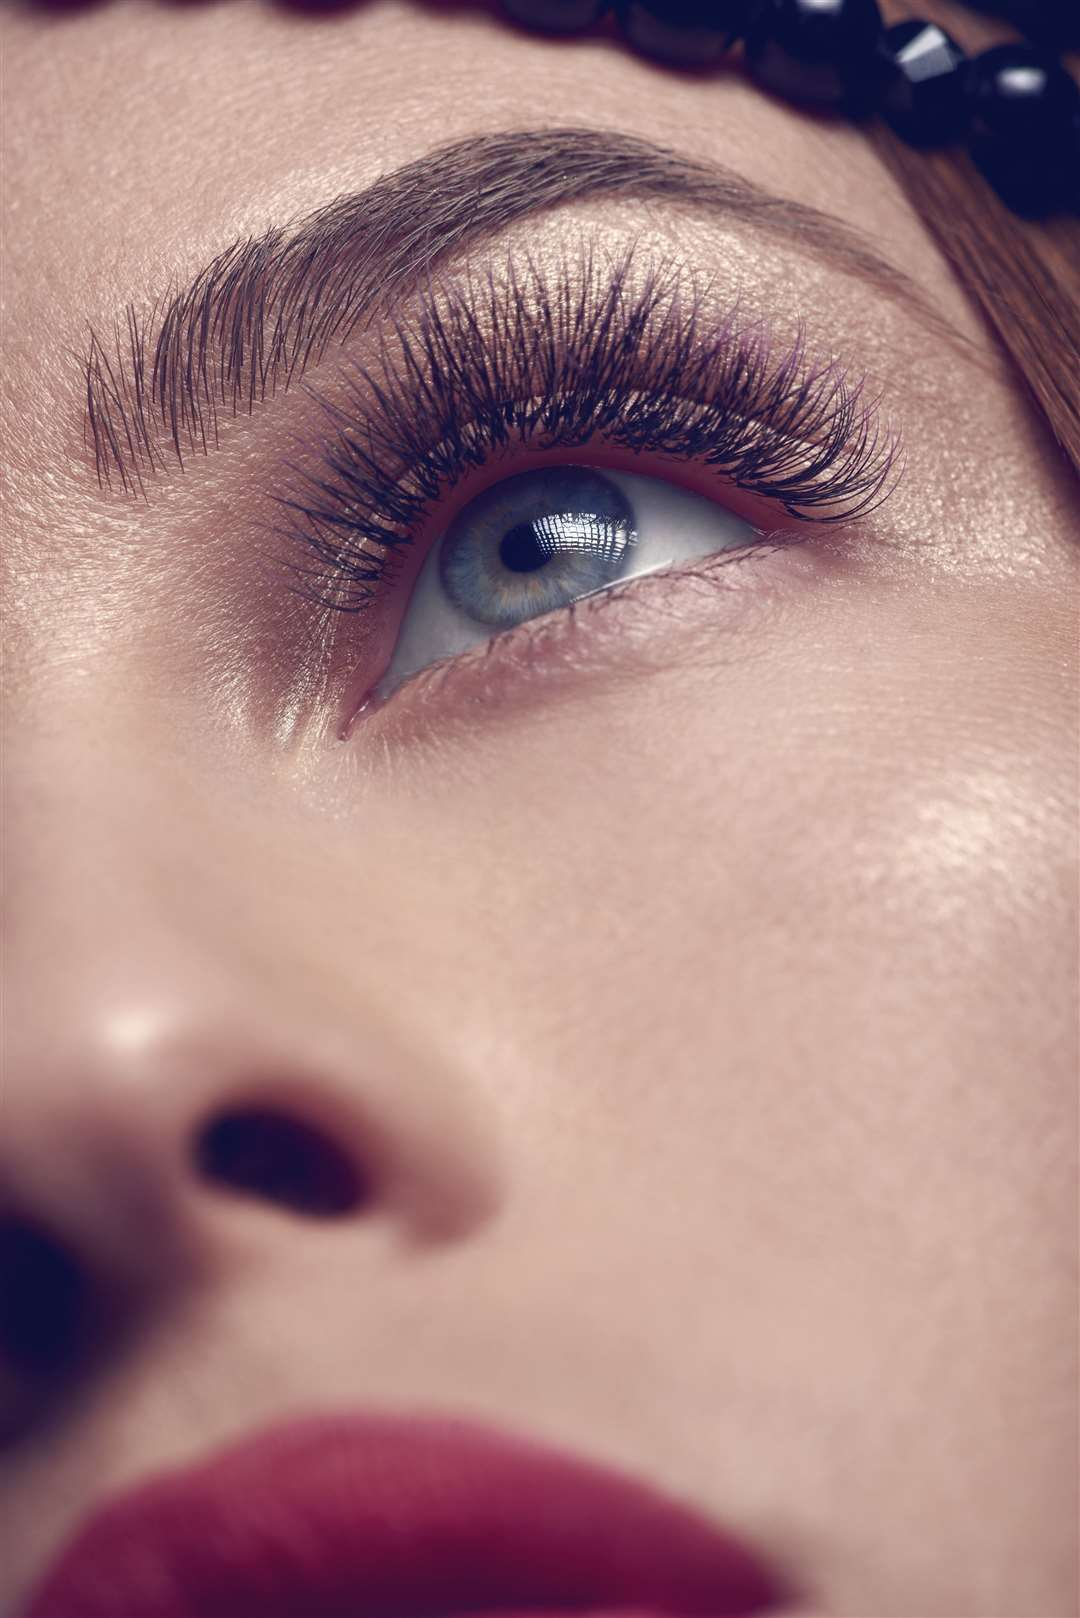 Lash extensions, stock shot (Salon @ No 5 Prize) (15344081)